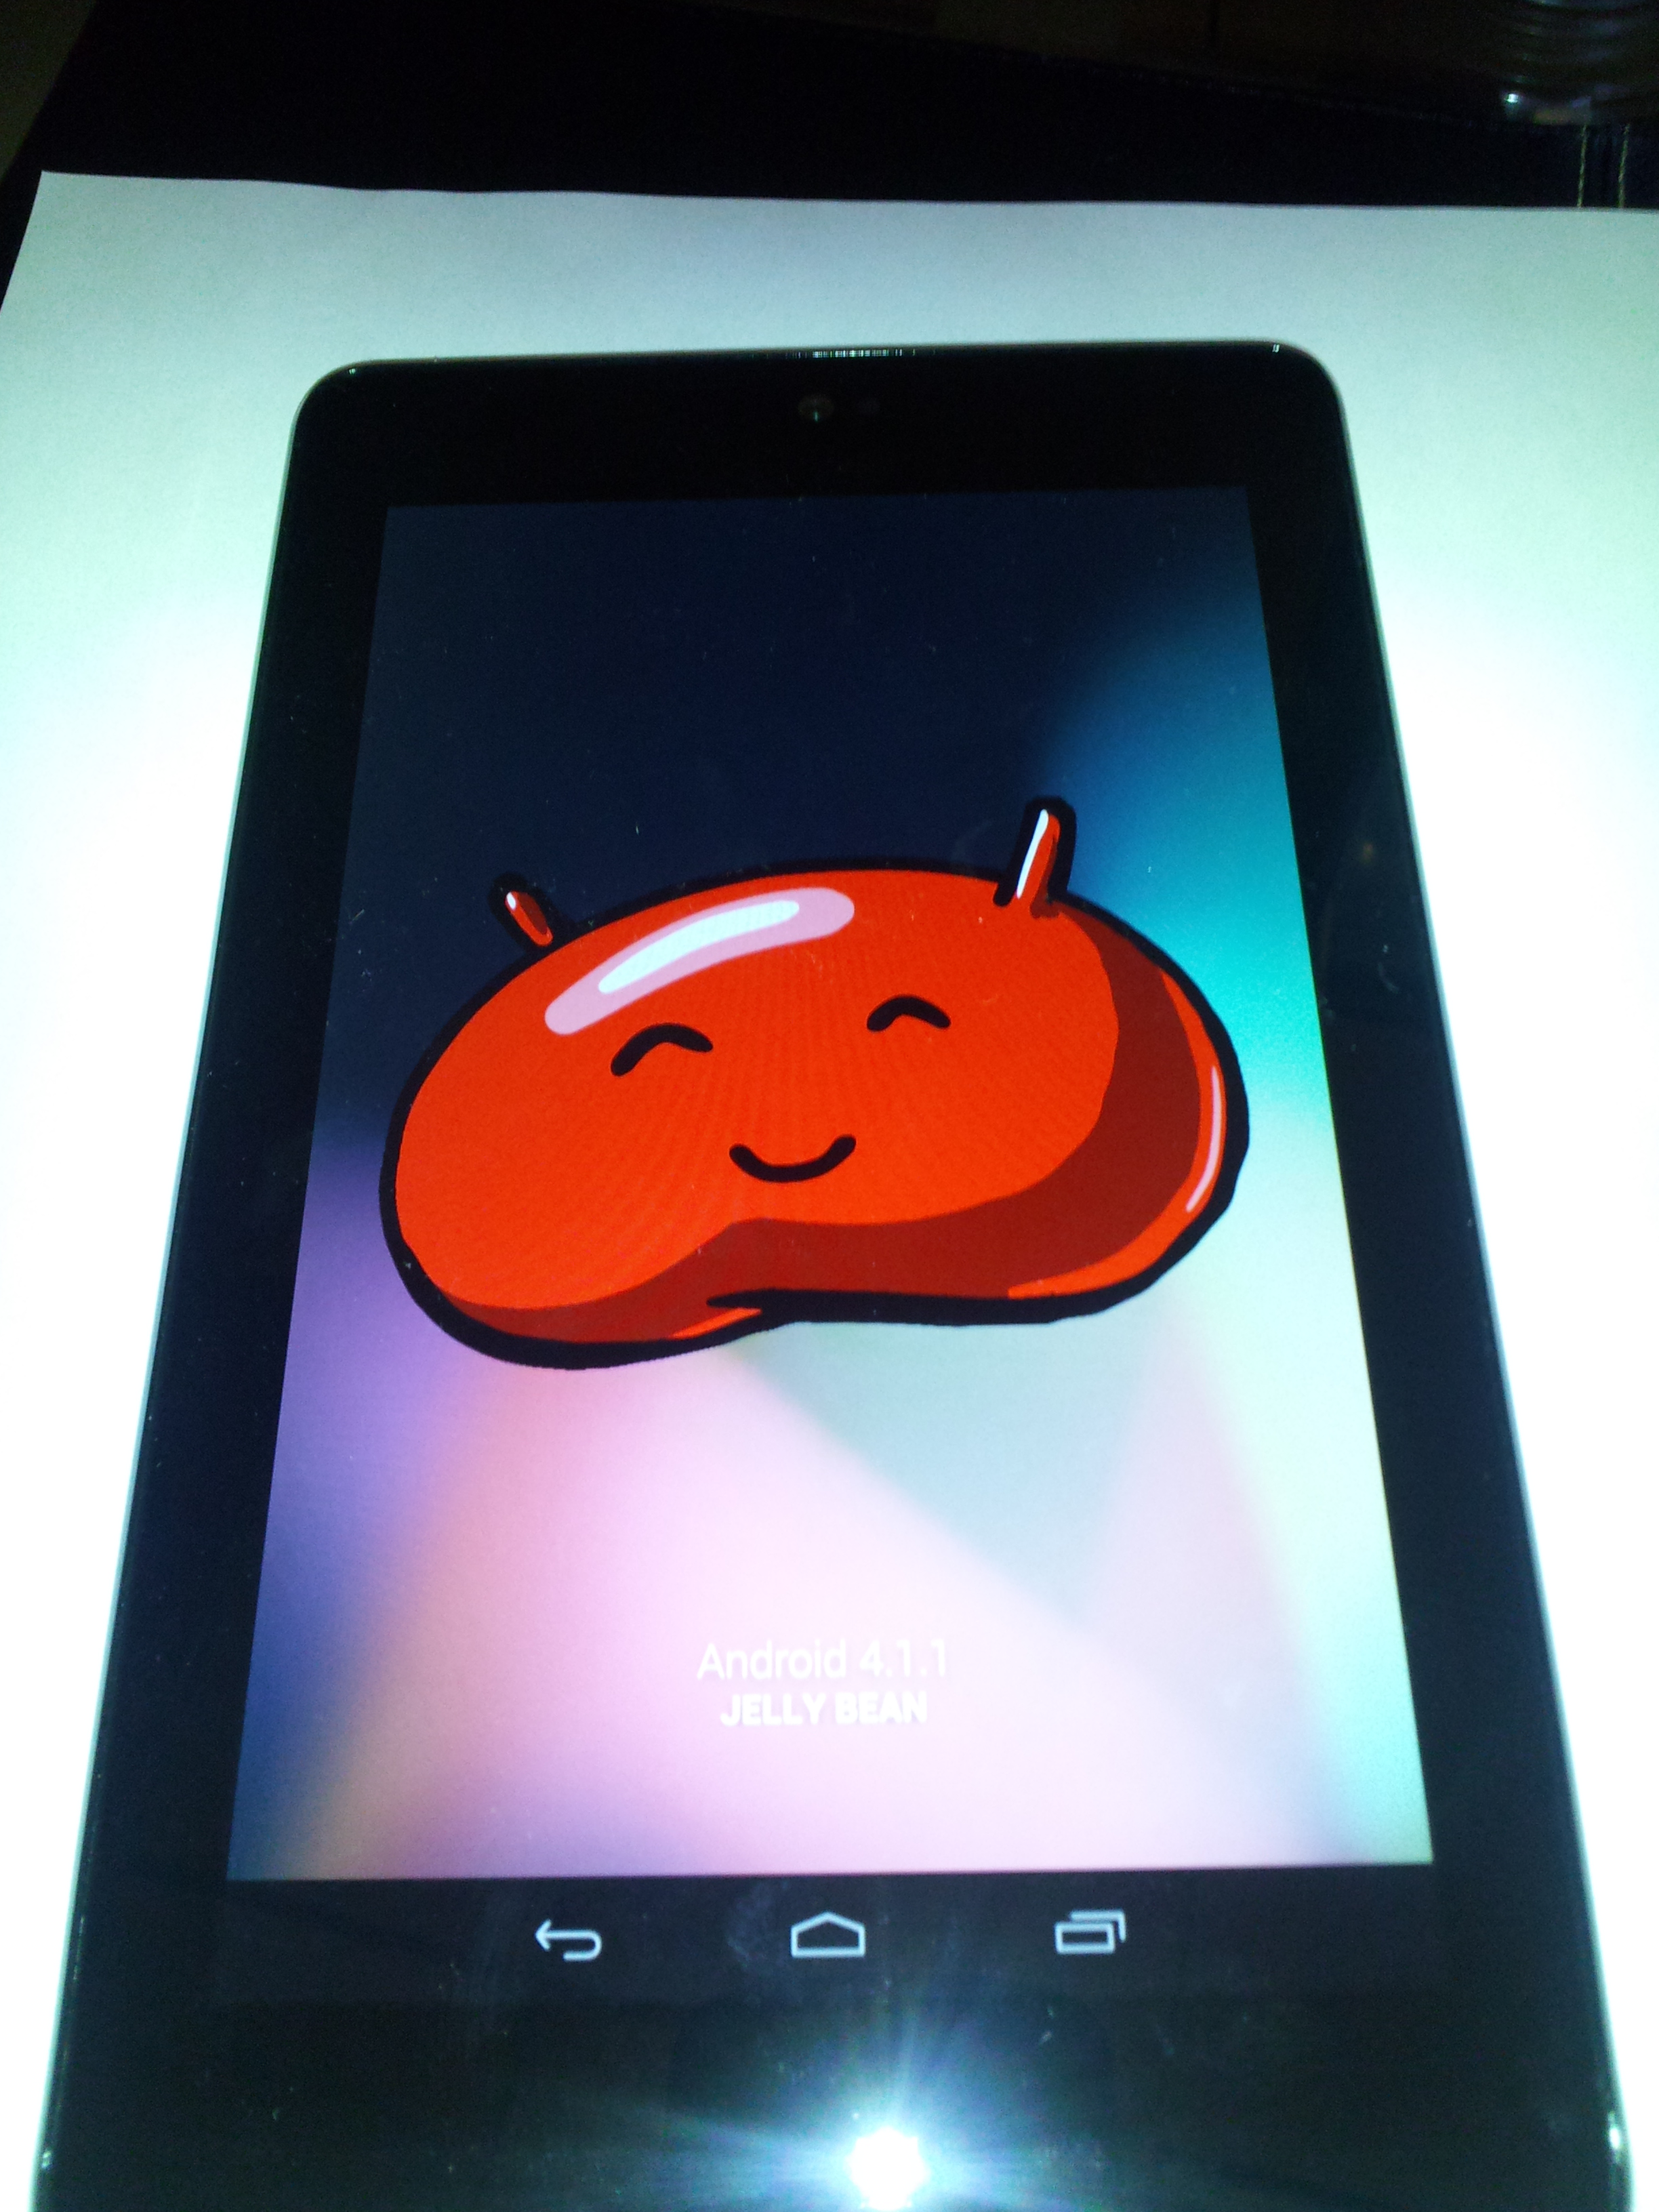 Android Jelly Bean 4.1.1 Easter egg